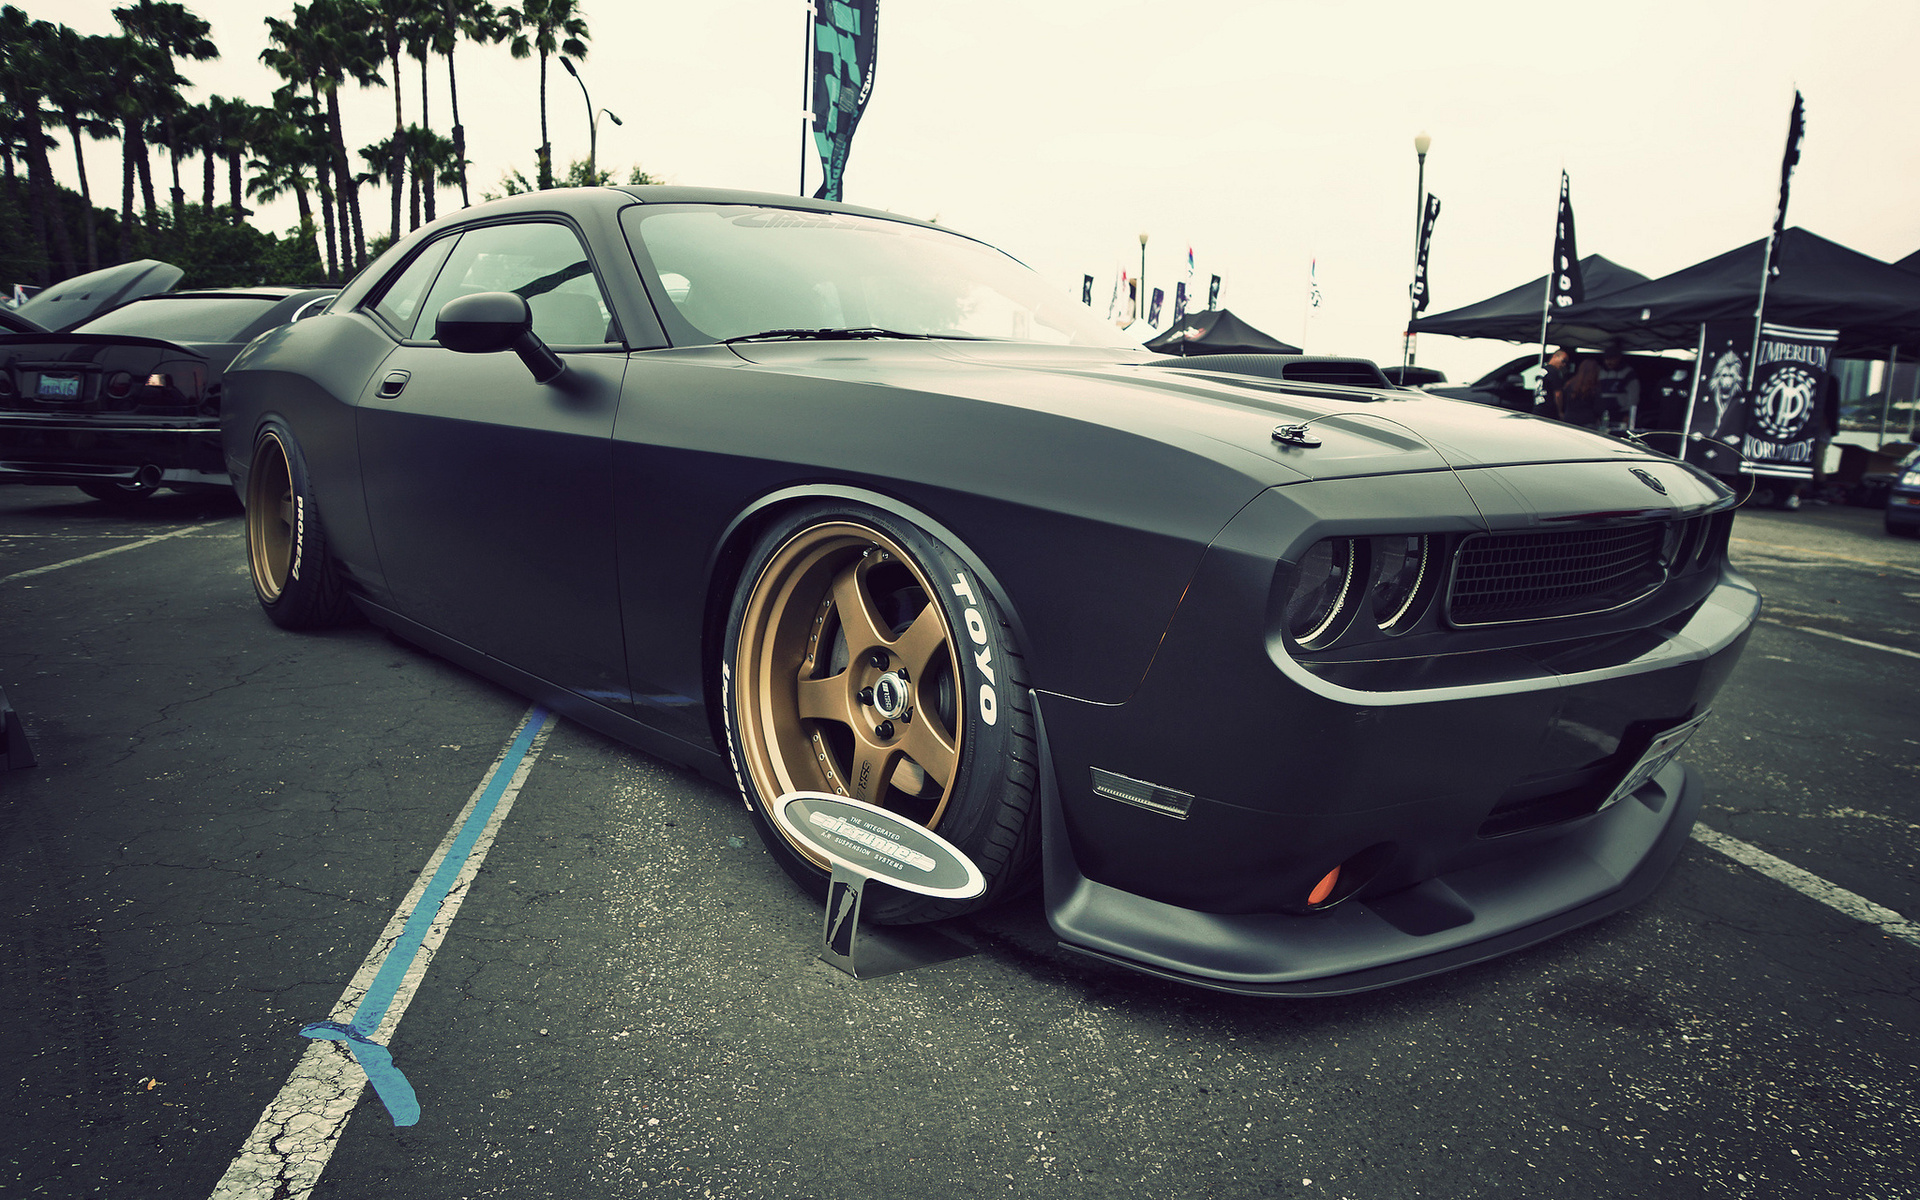 Dodge Challenger Vehicles Cars Custom Exotic Muscle Tuning